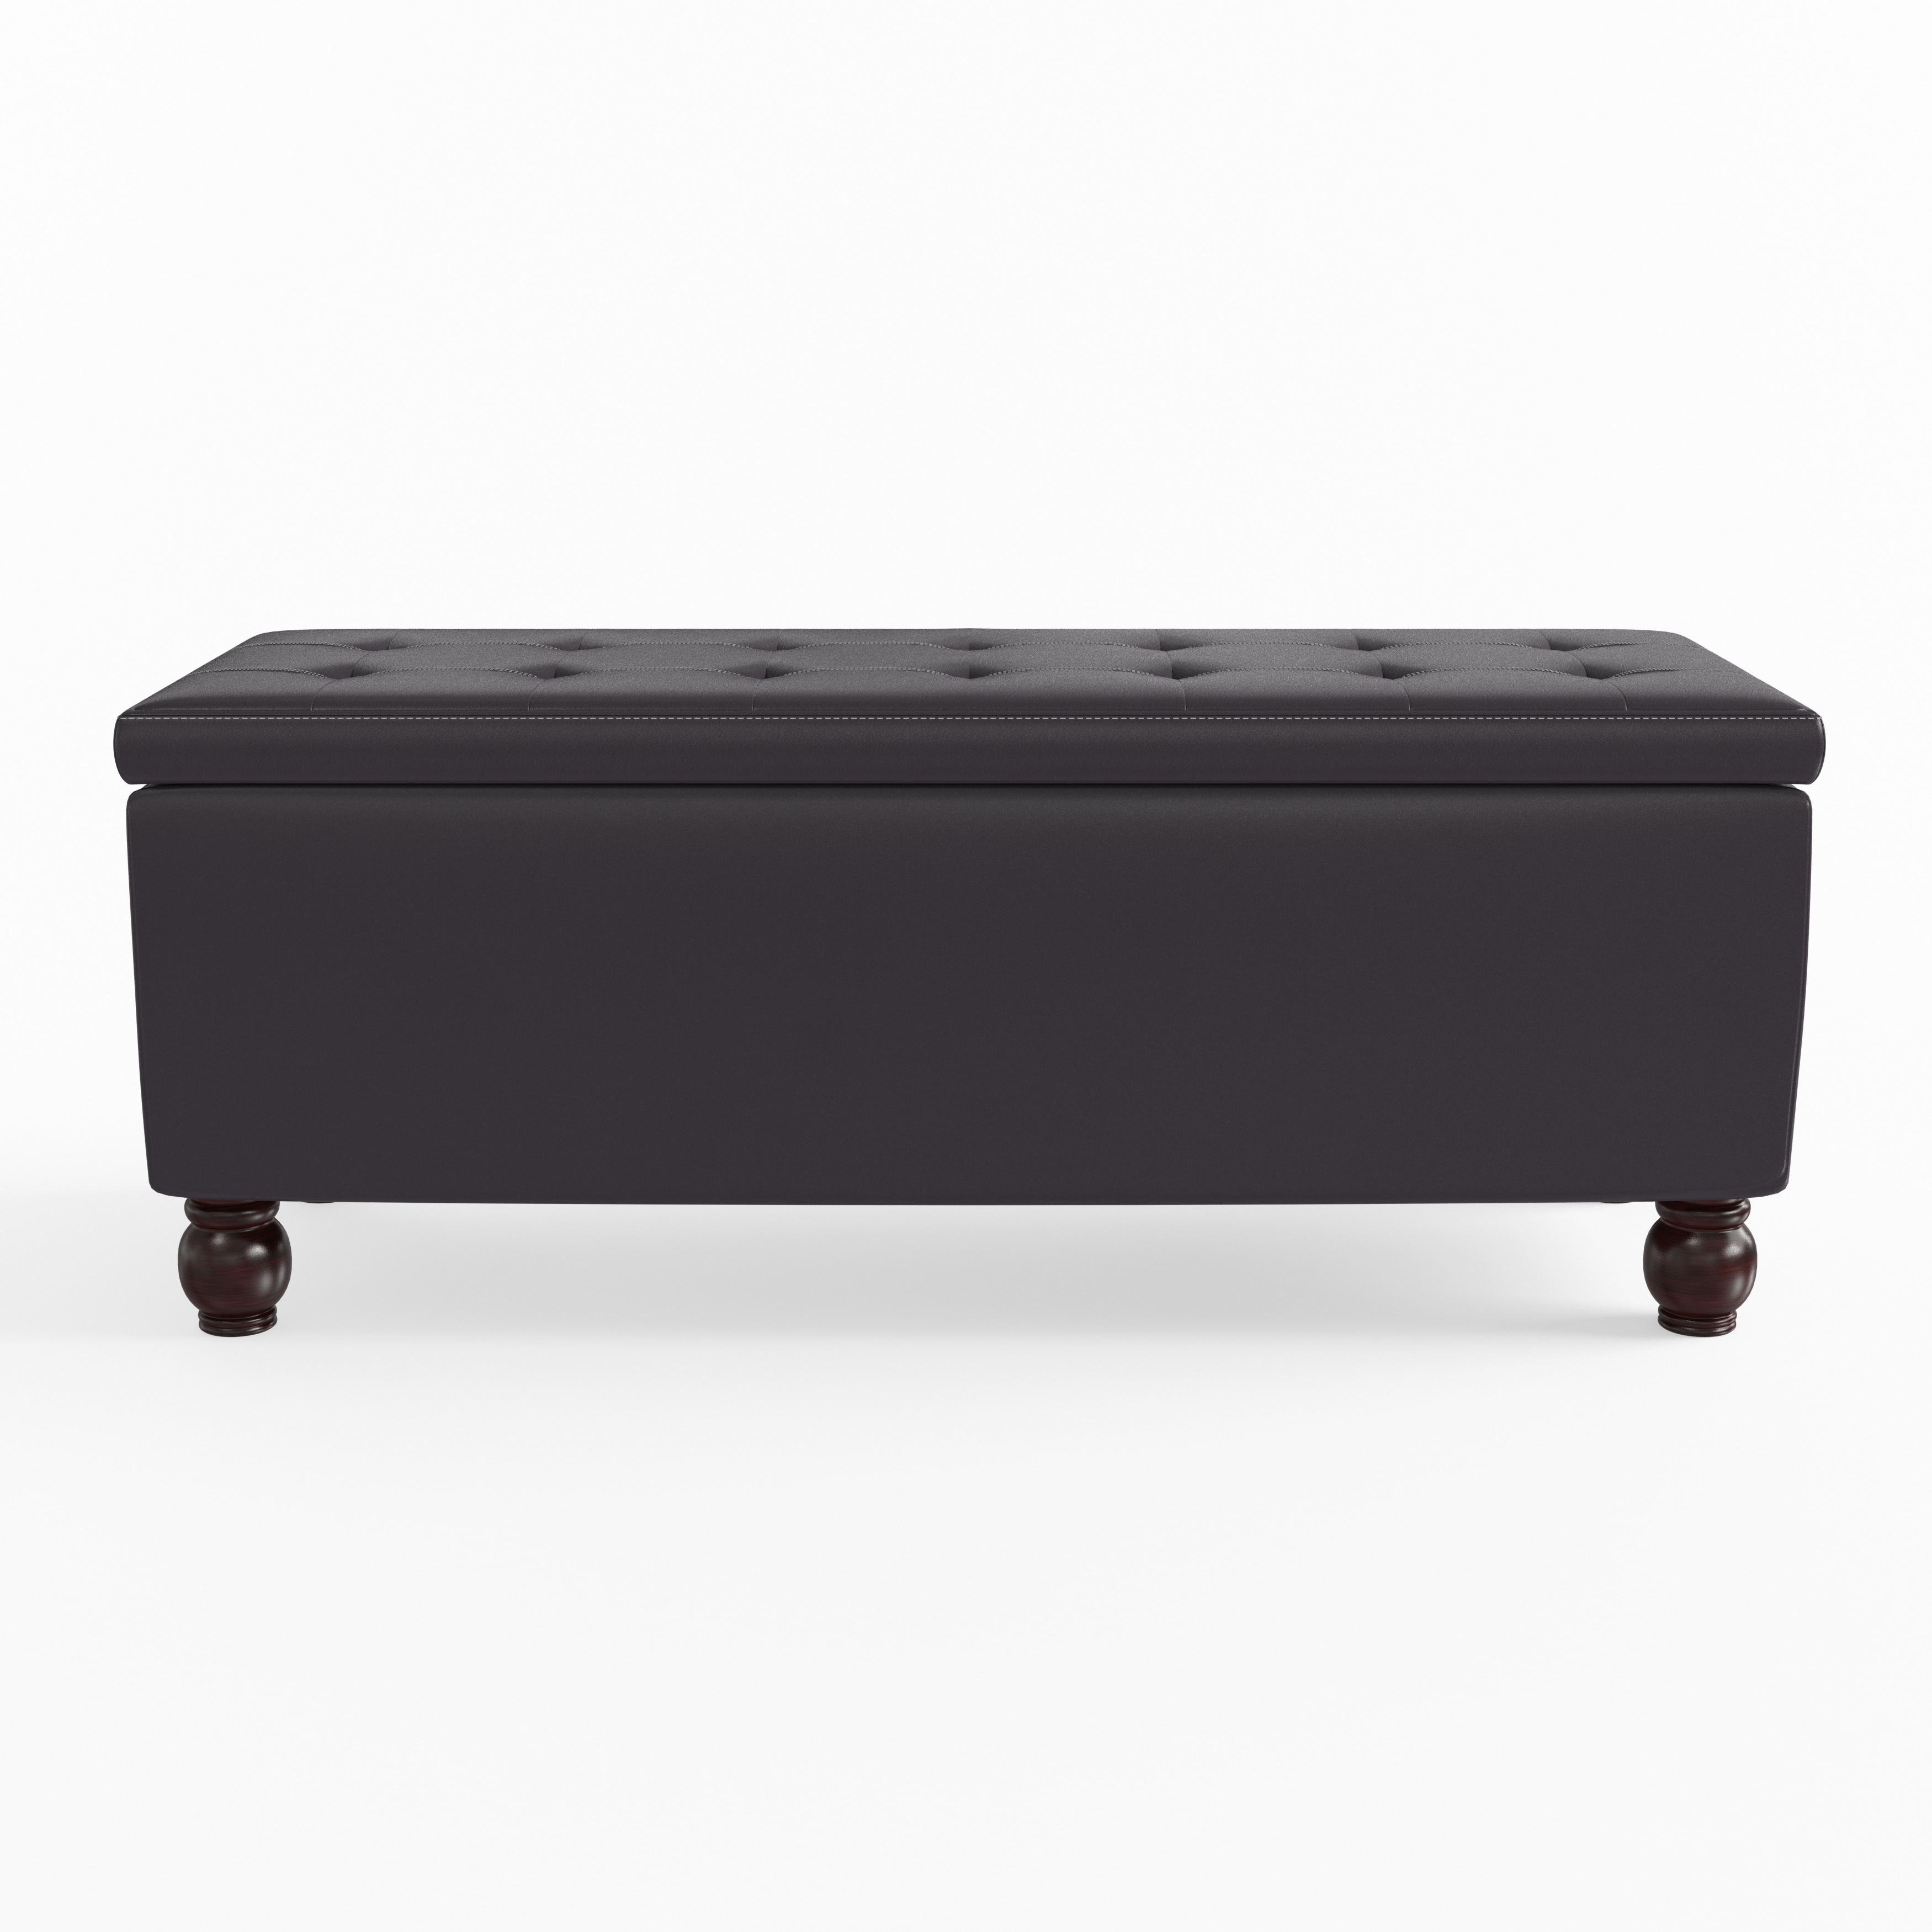 Copper Grove Tonto Bonded Leather Tufted Storage Ottoman Bench